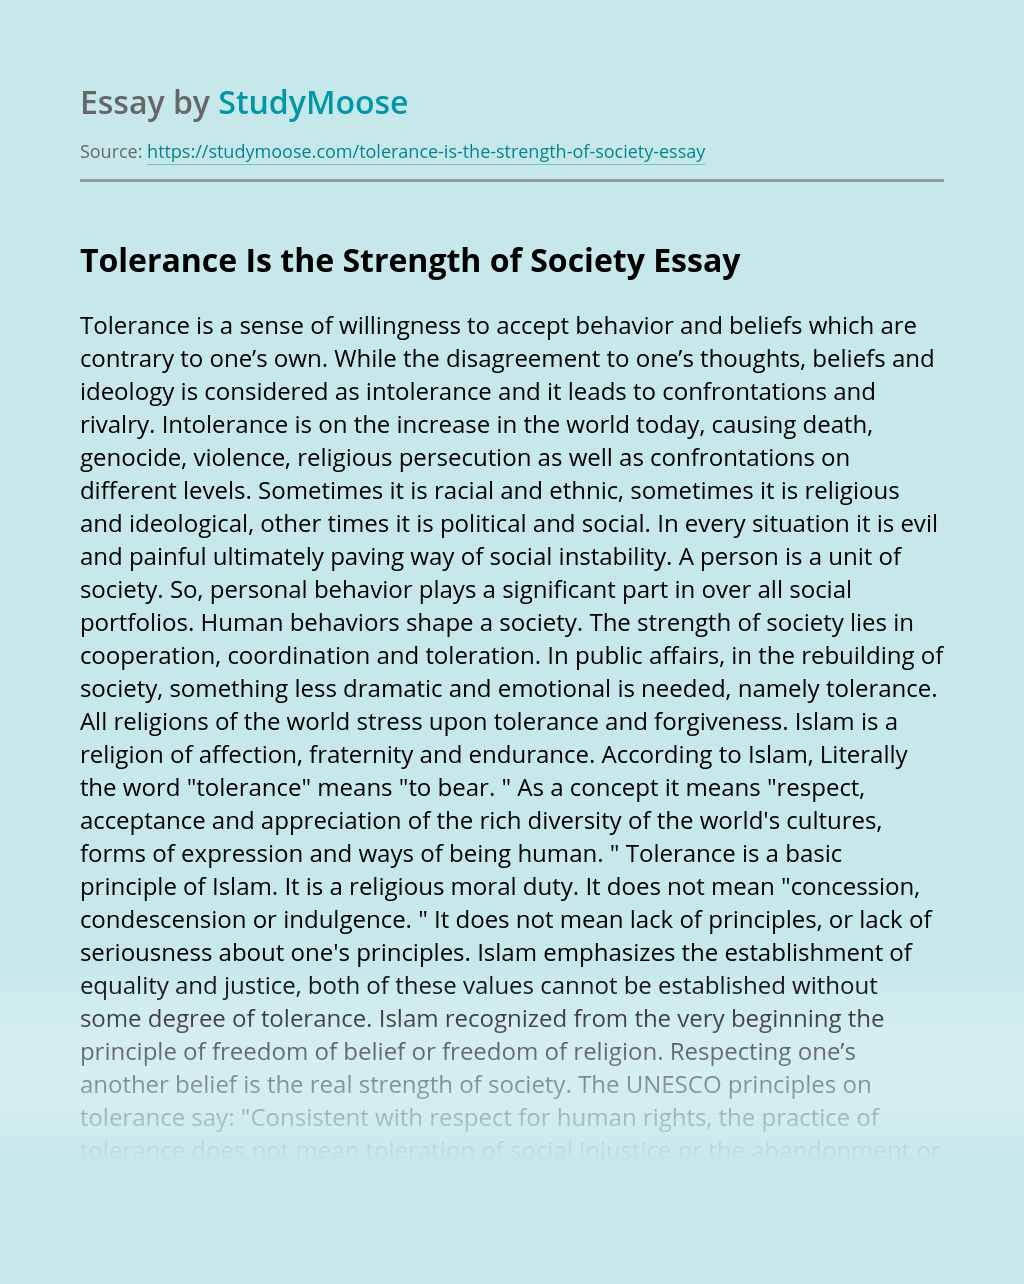 Tolerance Is the Strength of Society